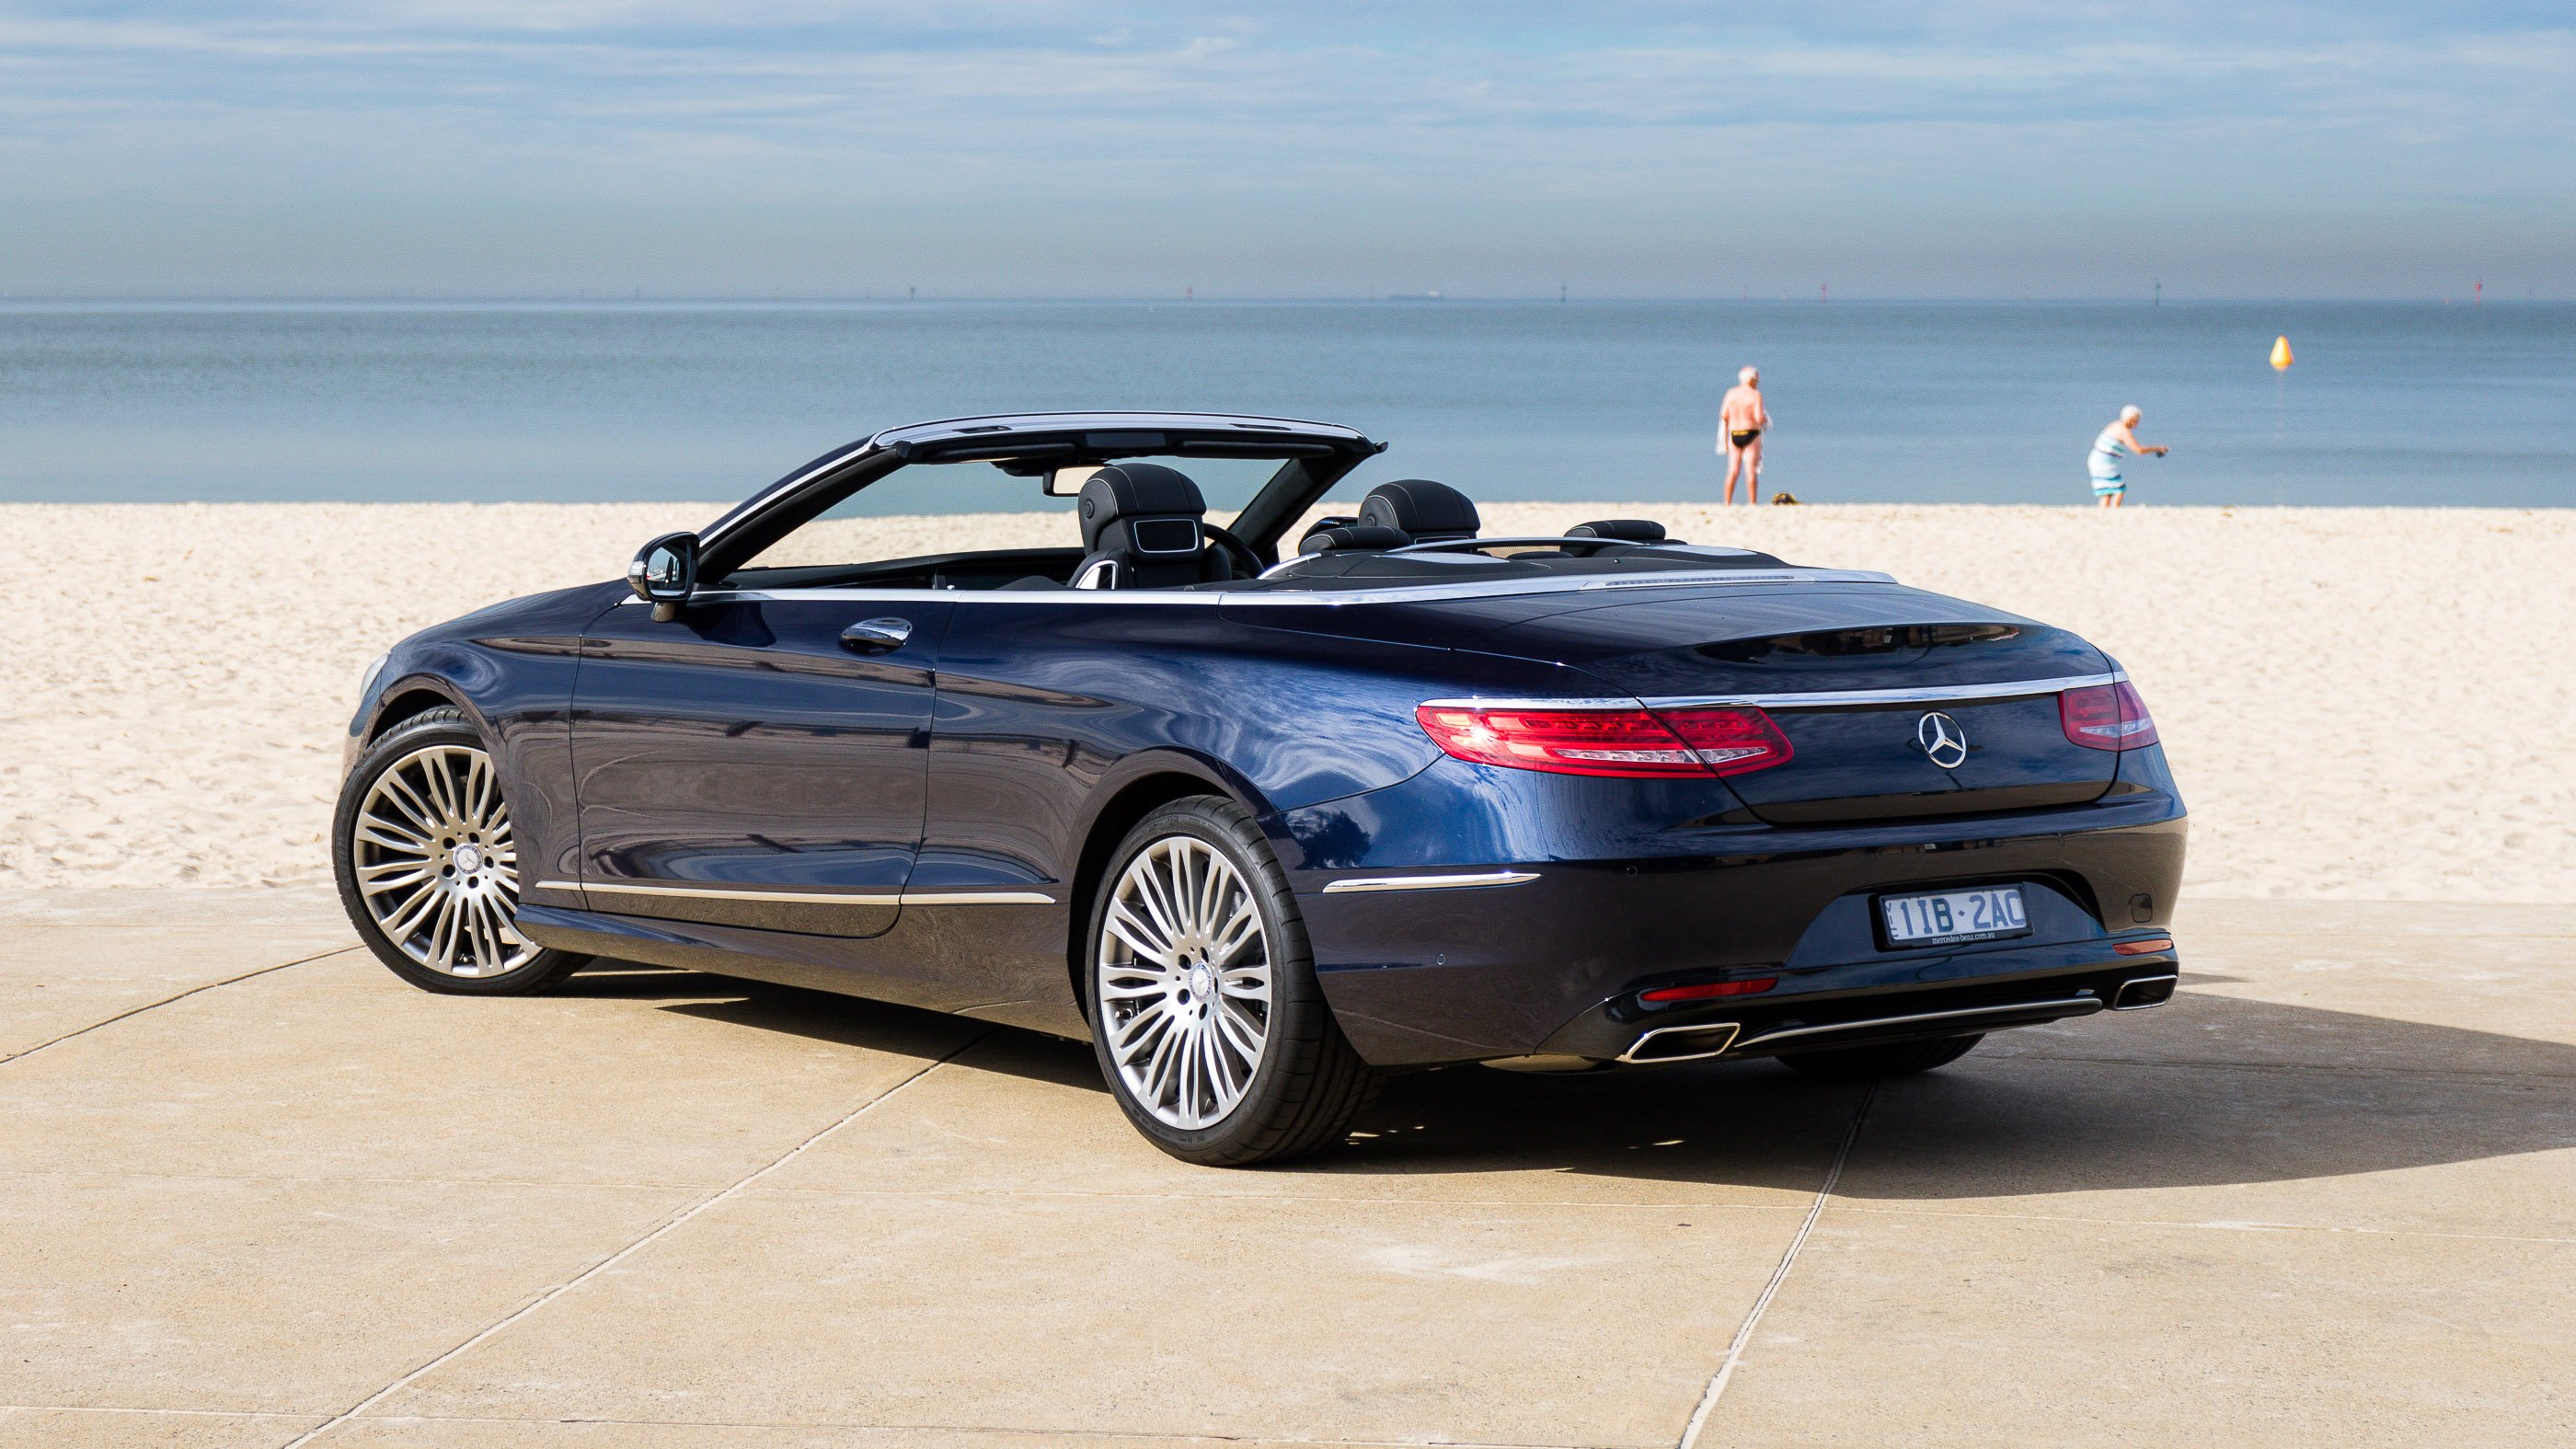 2017 mercedes benz s500 cabriolet review caradvice for Mercedes benz cabriolet 2017